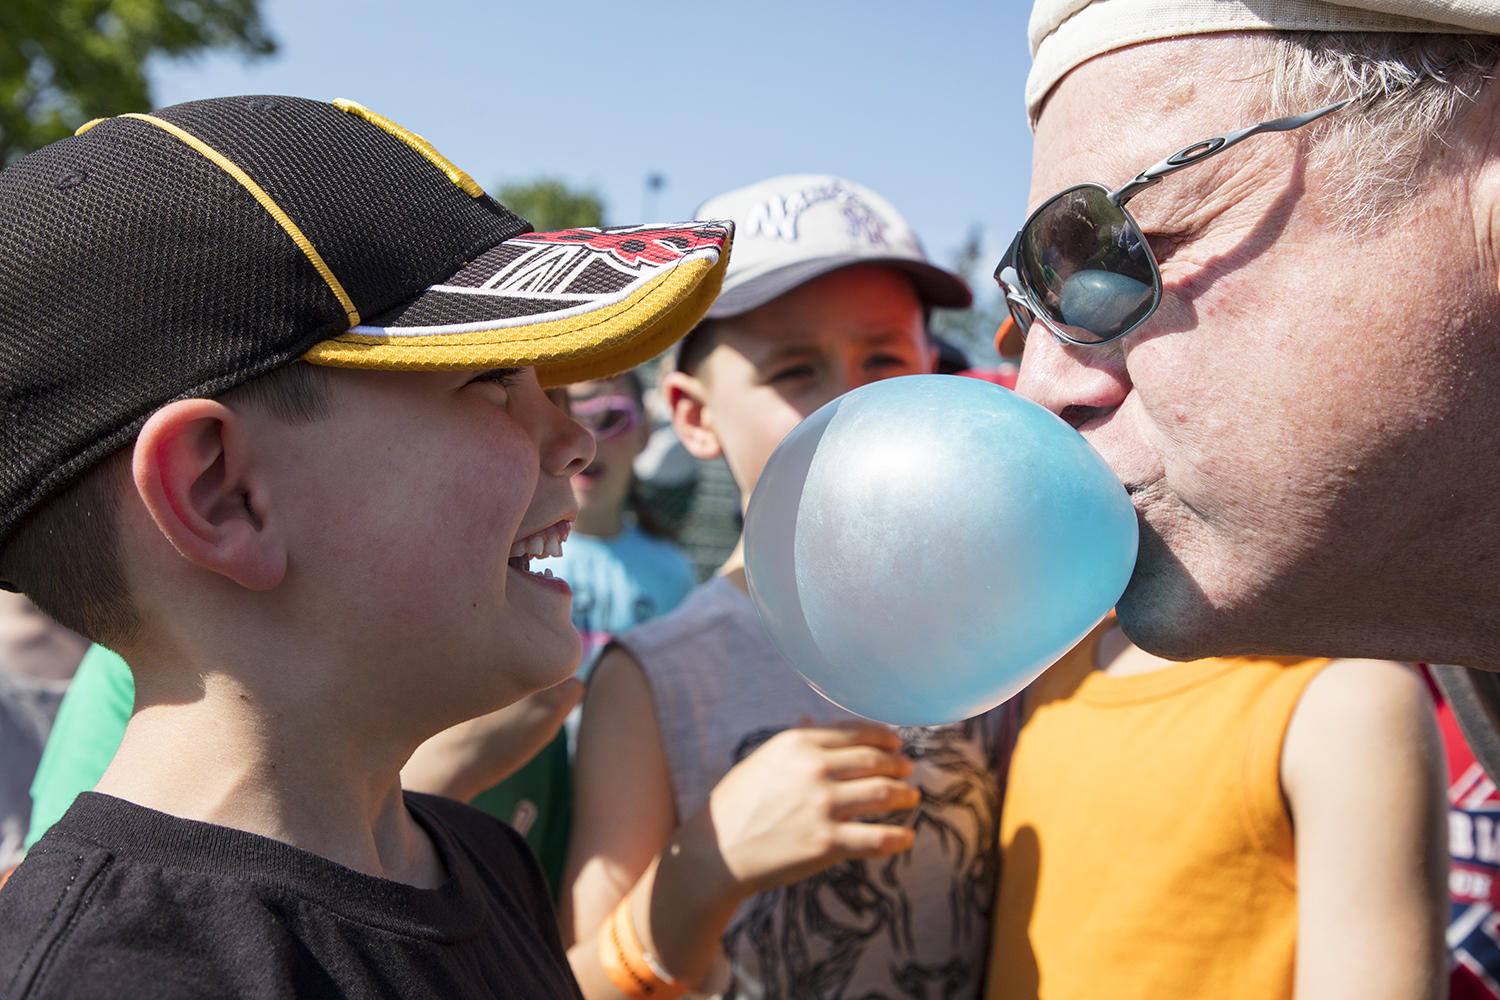 The inventor of Big League Chew, Rob Nelson, shows a young fan how to properly blow a bubble. (Milo Stewart Jr./National Baseball Hall of Fame and Museum)